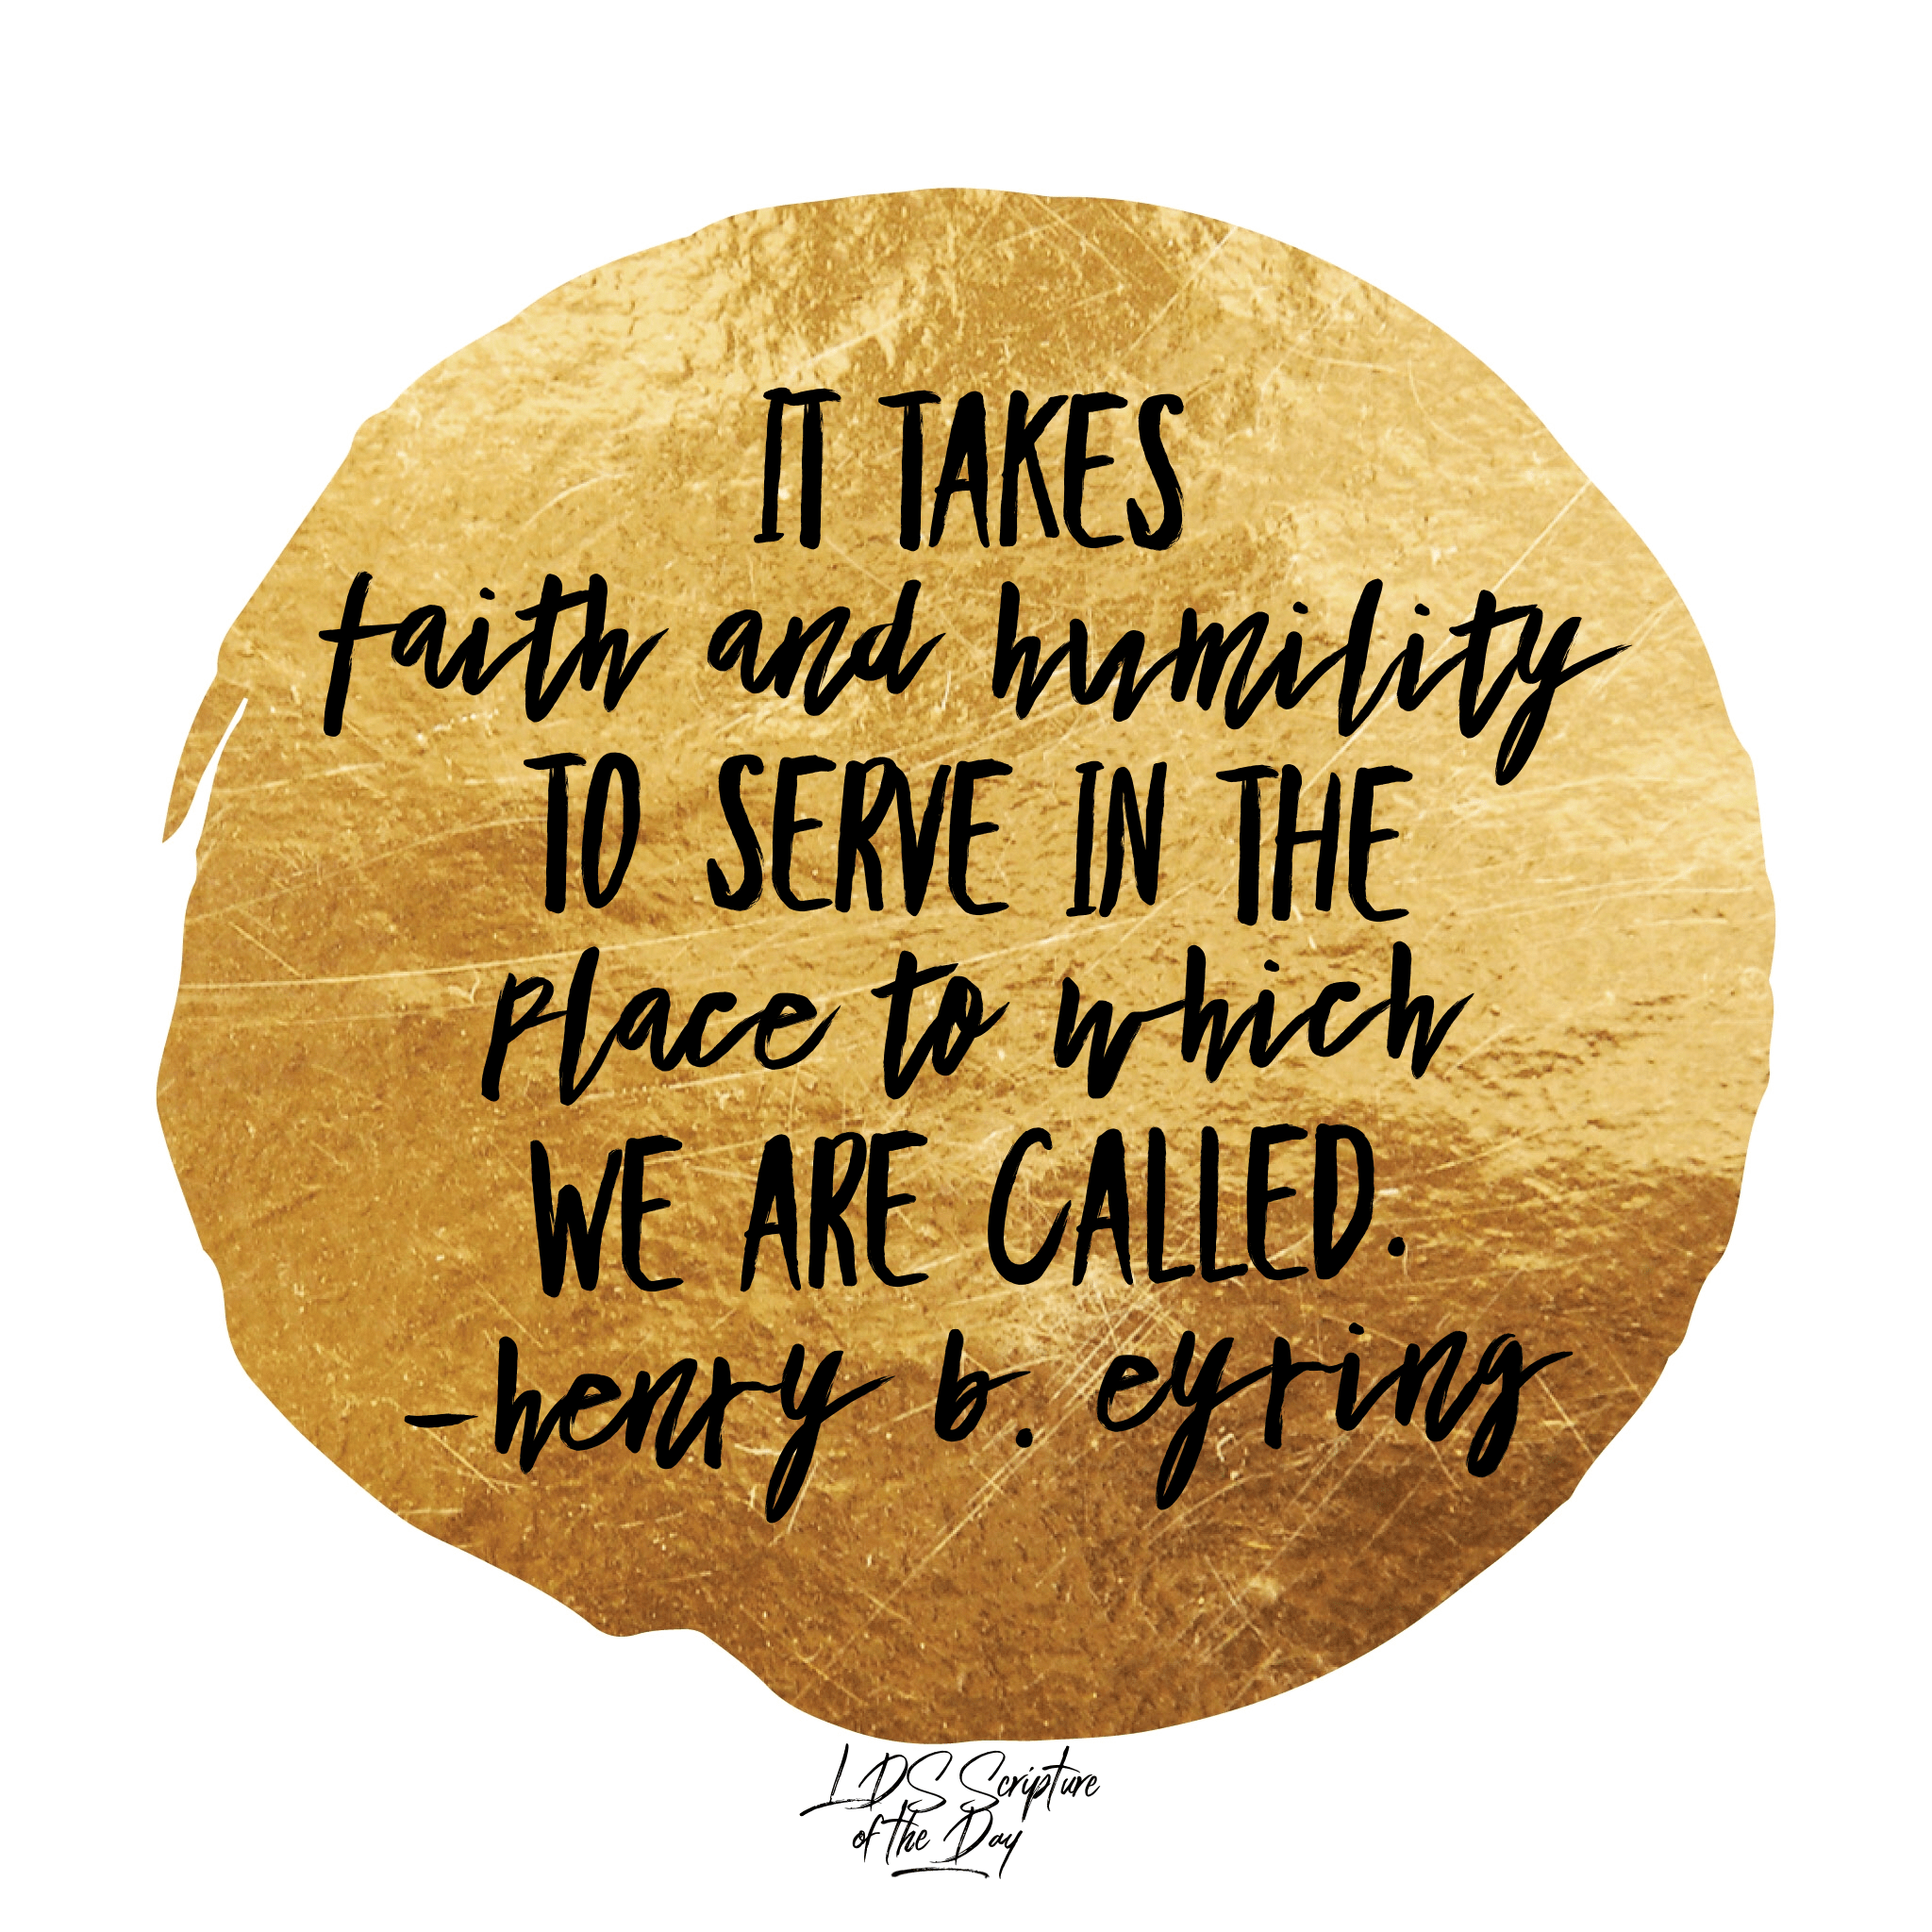 It takes faith and humility to serve in the place to which we are called. —Henry B. Eyring